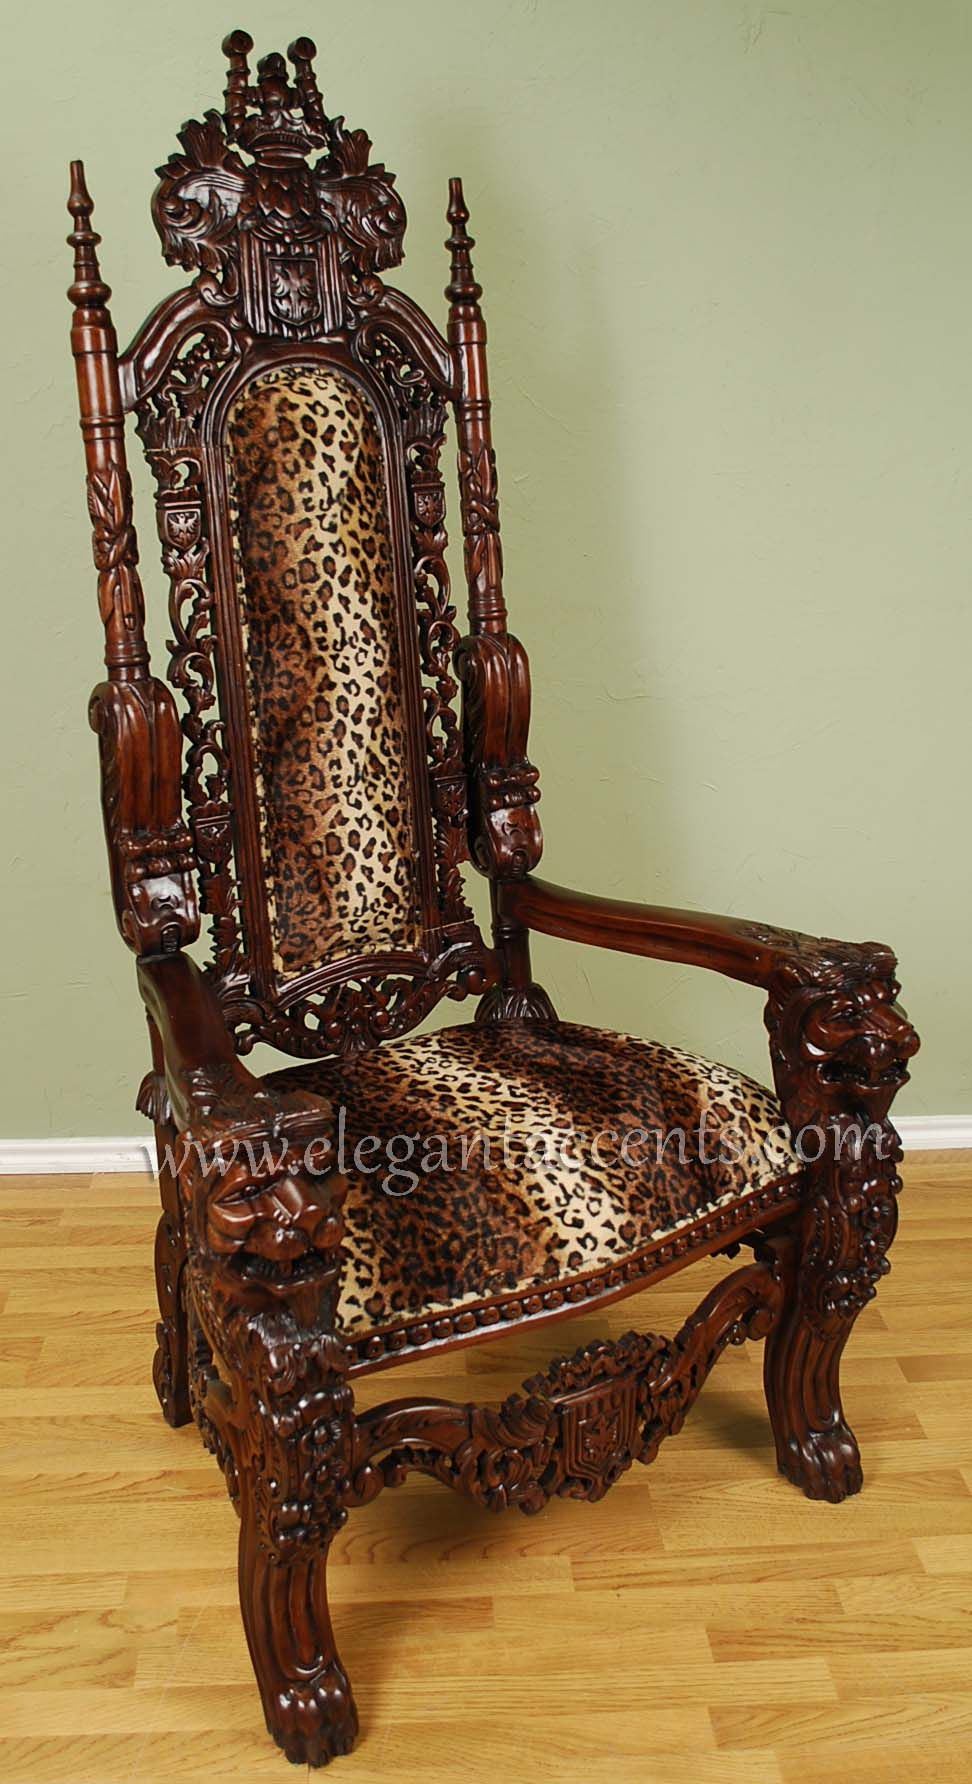 Lion Throne Chair 995 Brown Lacquer With Leopard Print